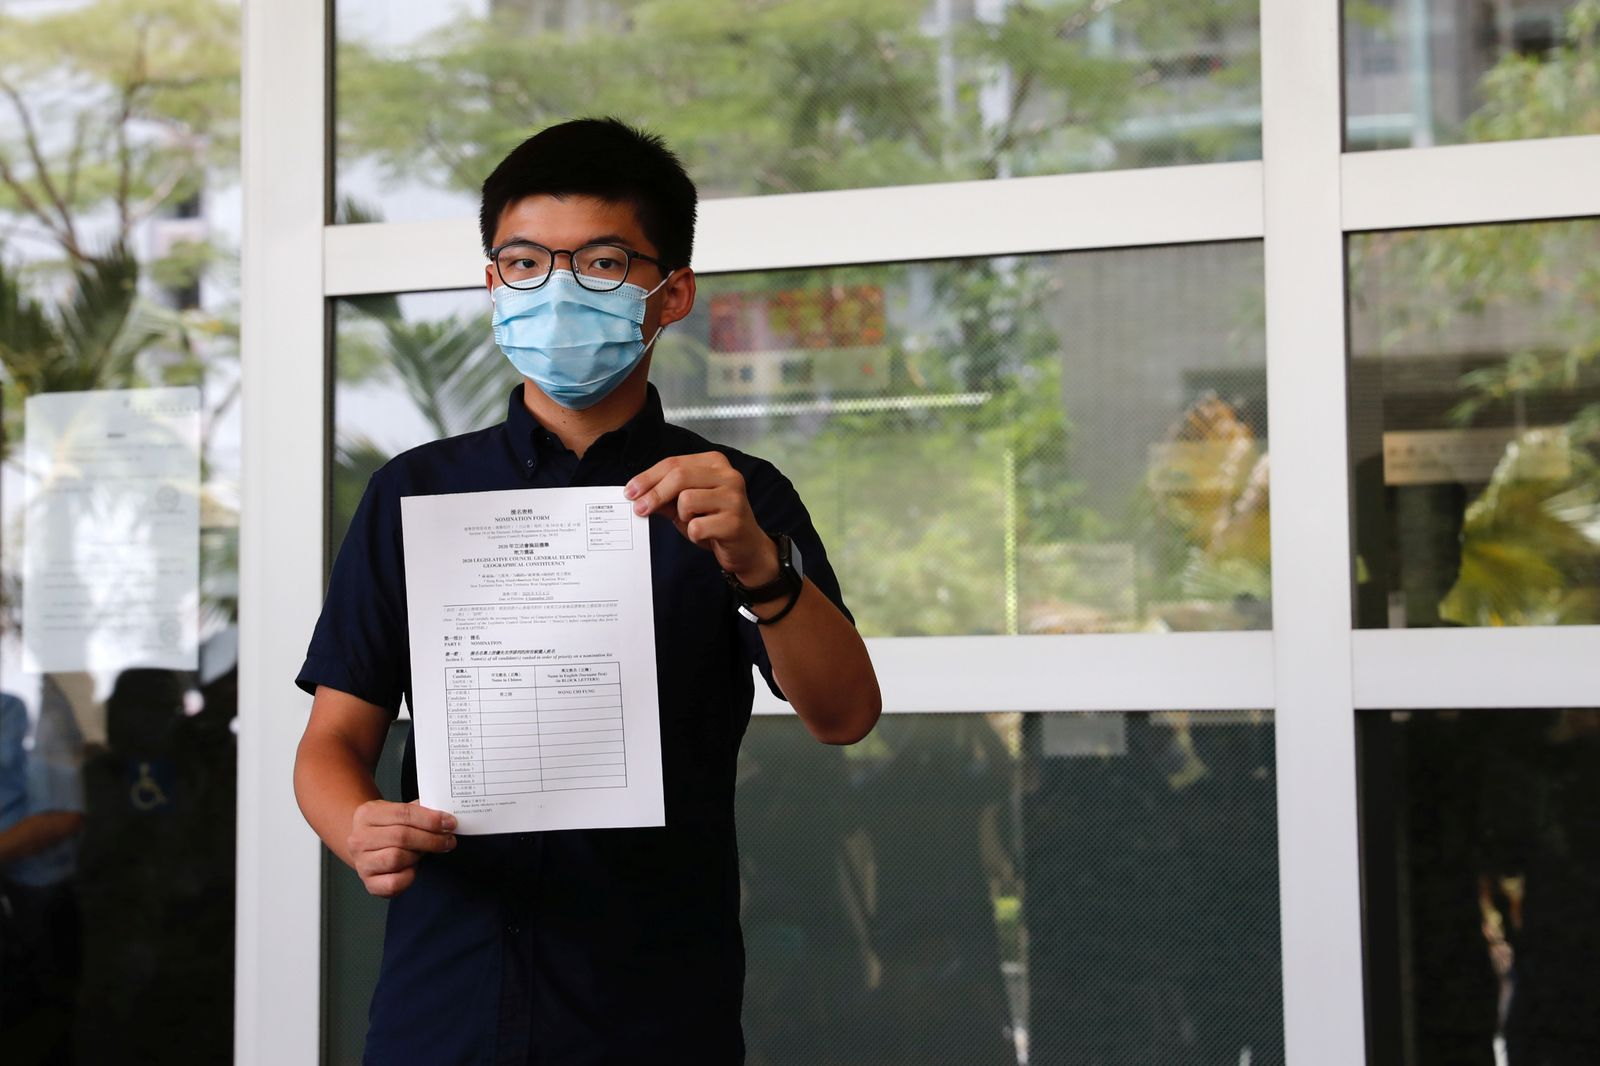 Pro-democracy activist Joshua Wong registers as a candidate for the upcoming Legislative Council election in Hong Kong